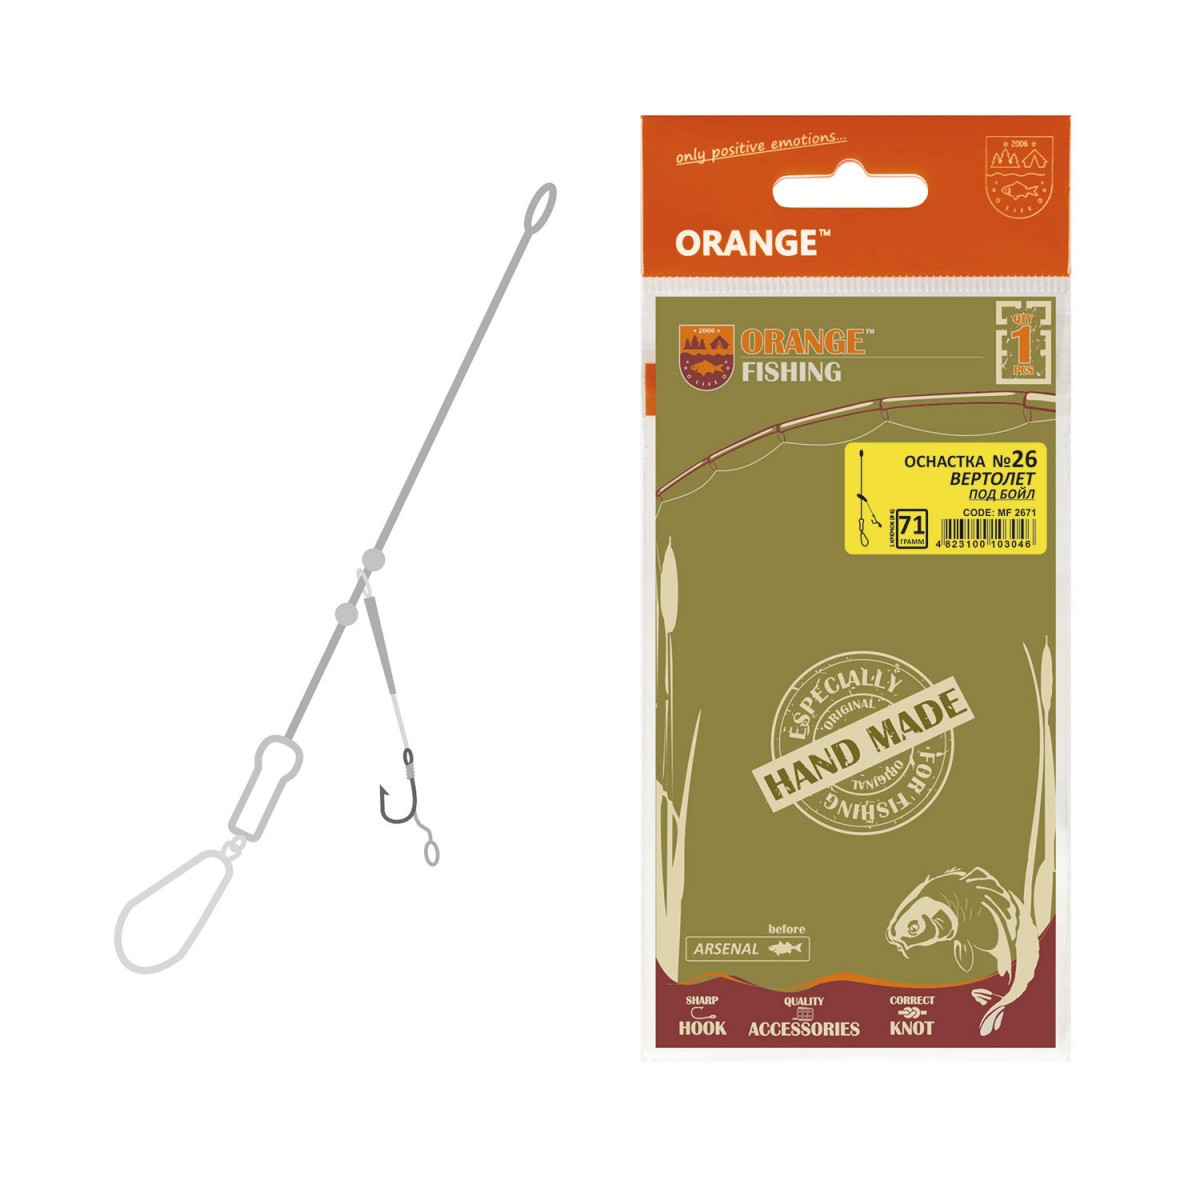 LIFE-ORANGE RIG HELICOPTER, (1 HOOK, FOR BOILIES, #4), 56G BOJLIS SZERELÉK